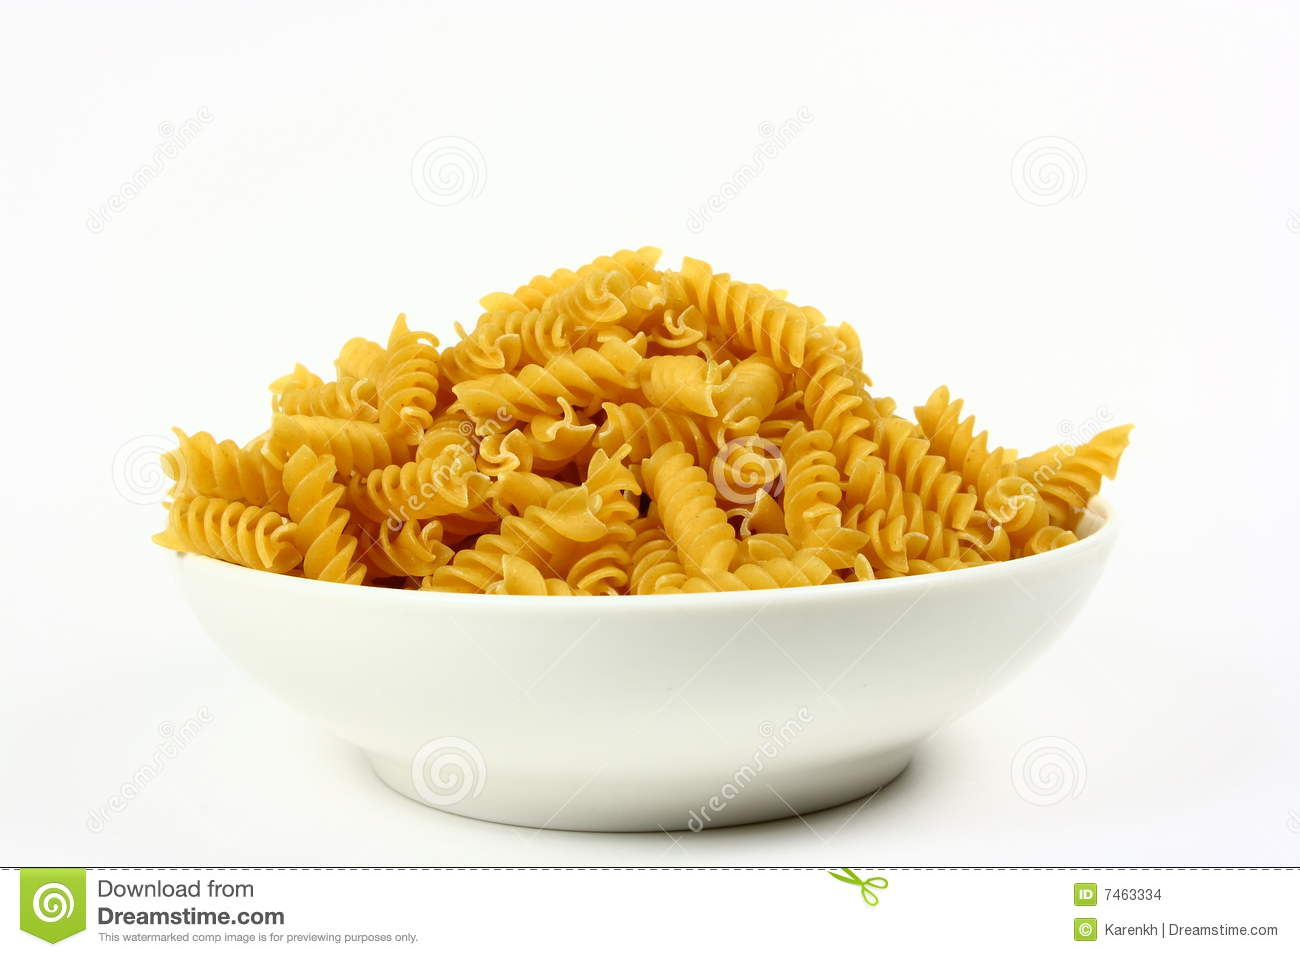 https://thumbs.dreamstime.com/z/spiral-rotini-pasta-white-bowl-7463334.jpg